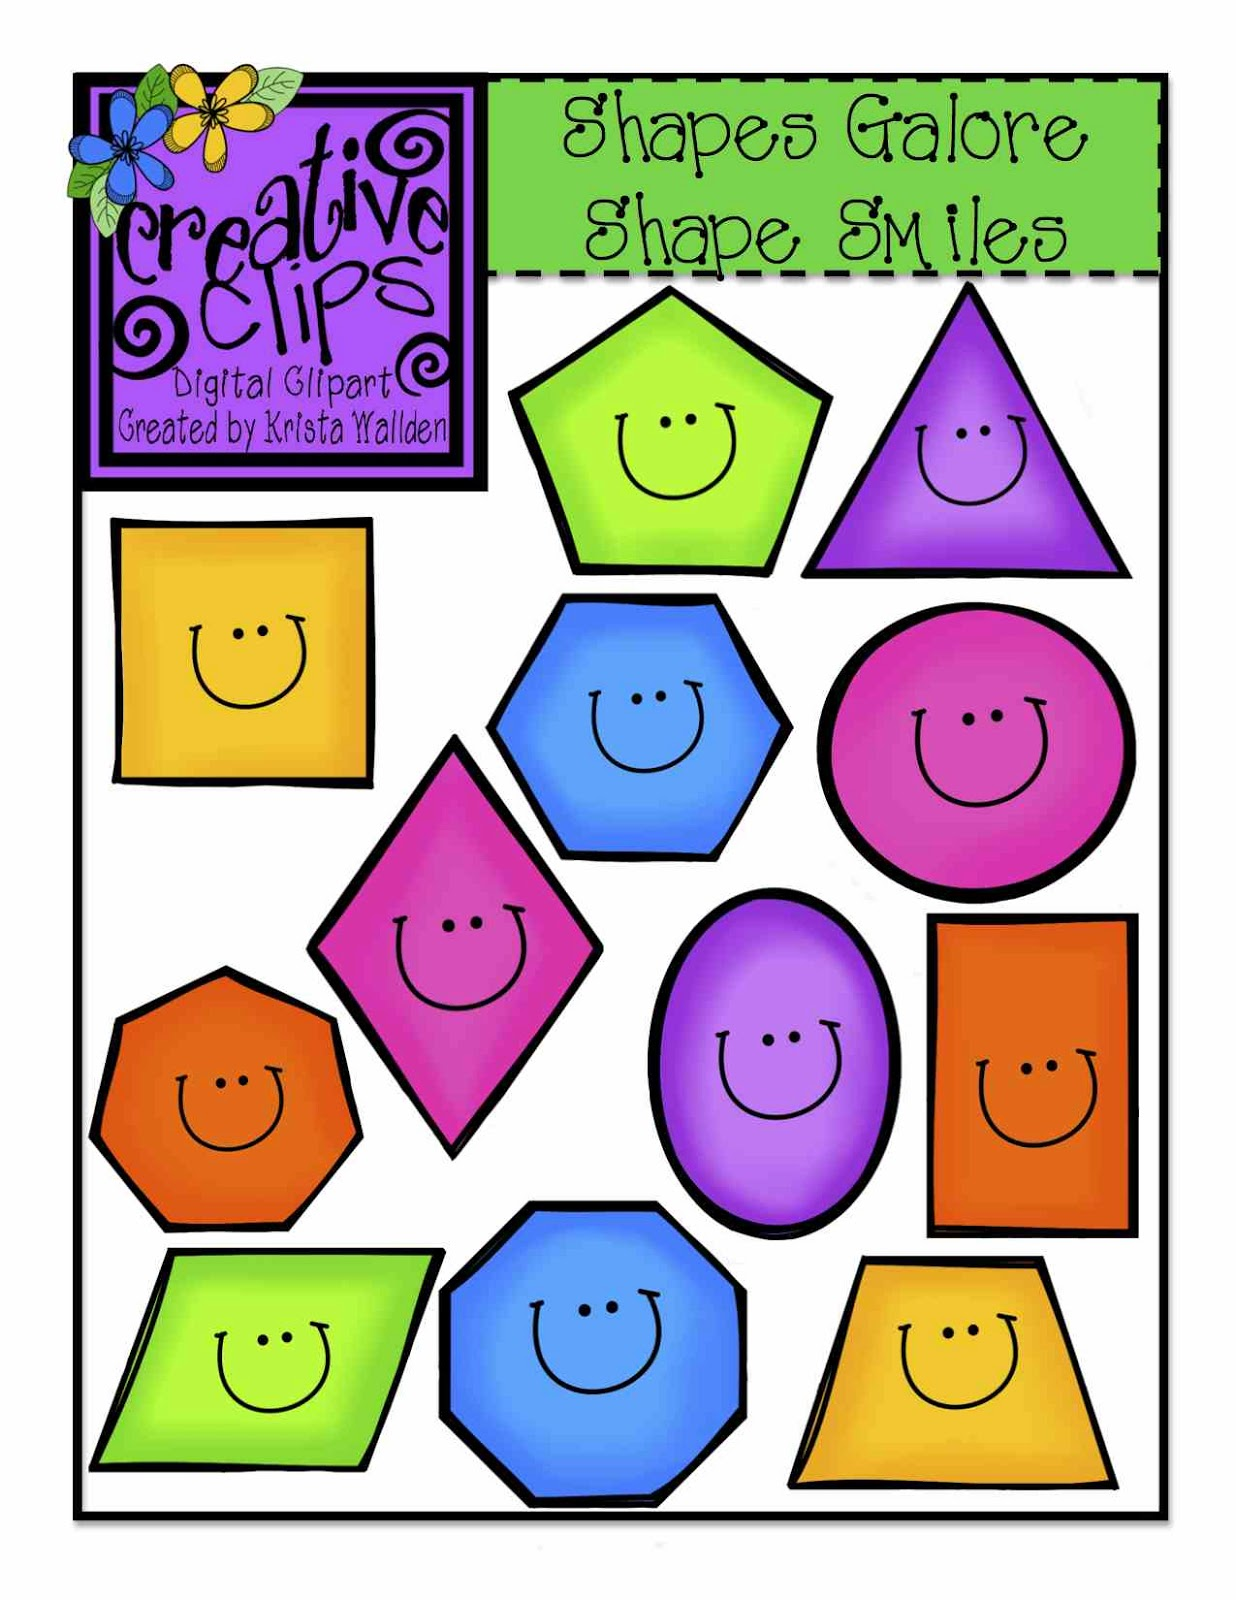 Free Cute Shape Cliparts Download Free Clip Art Free